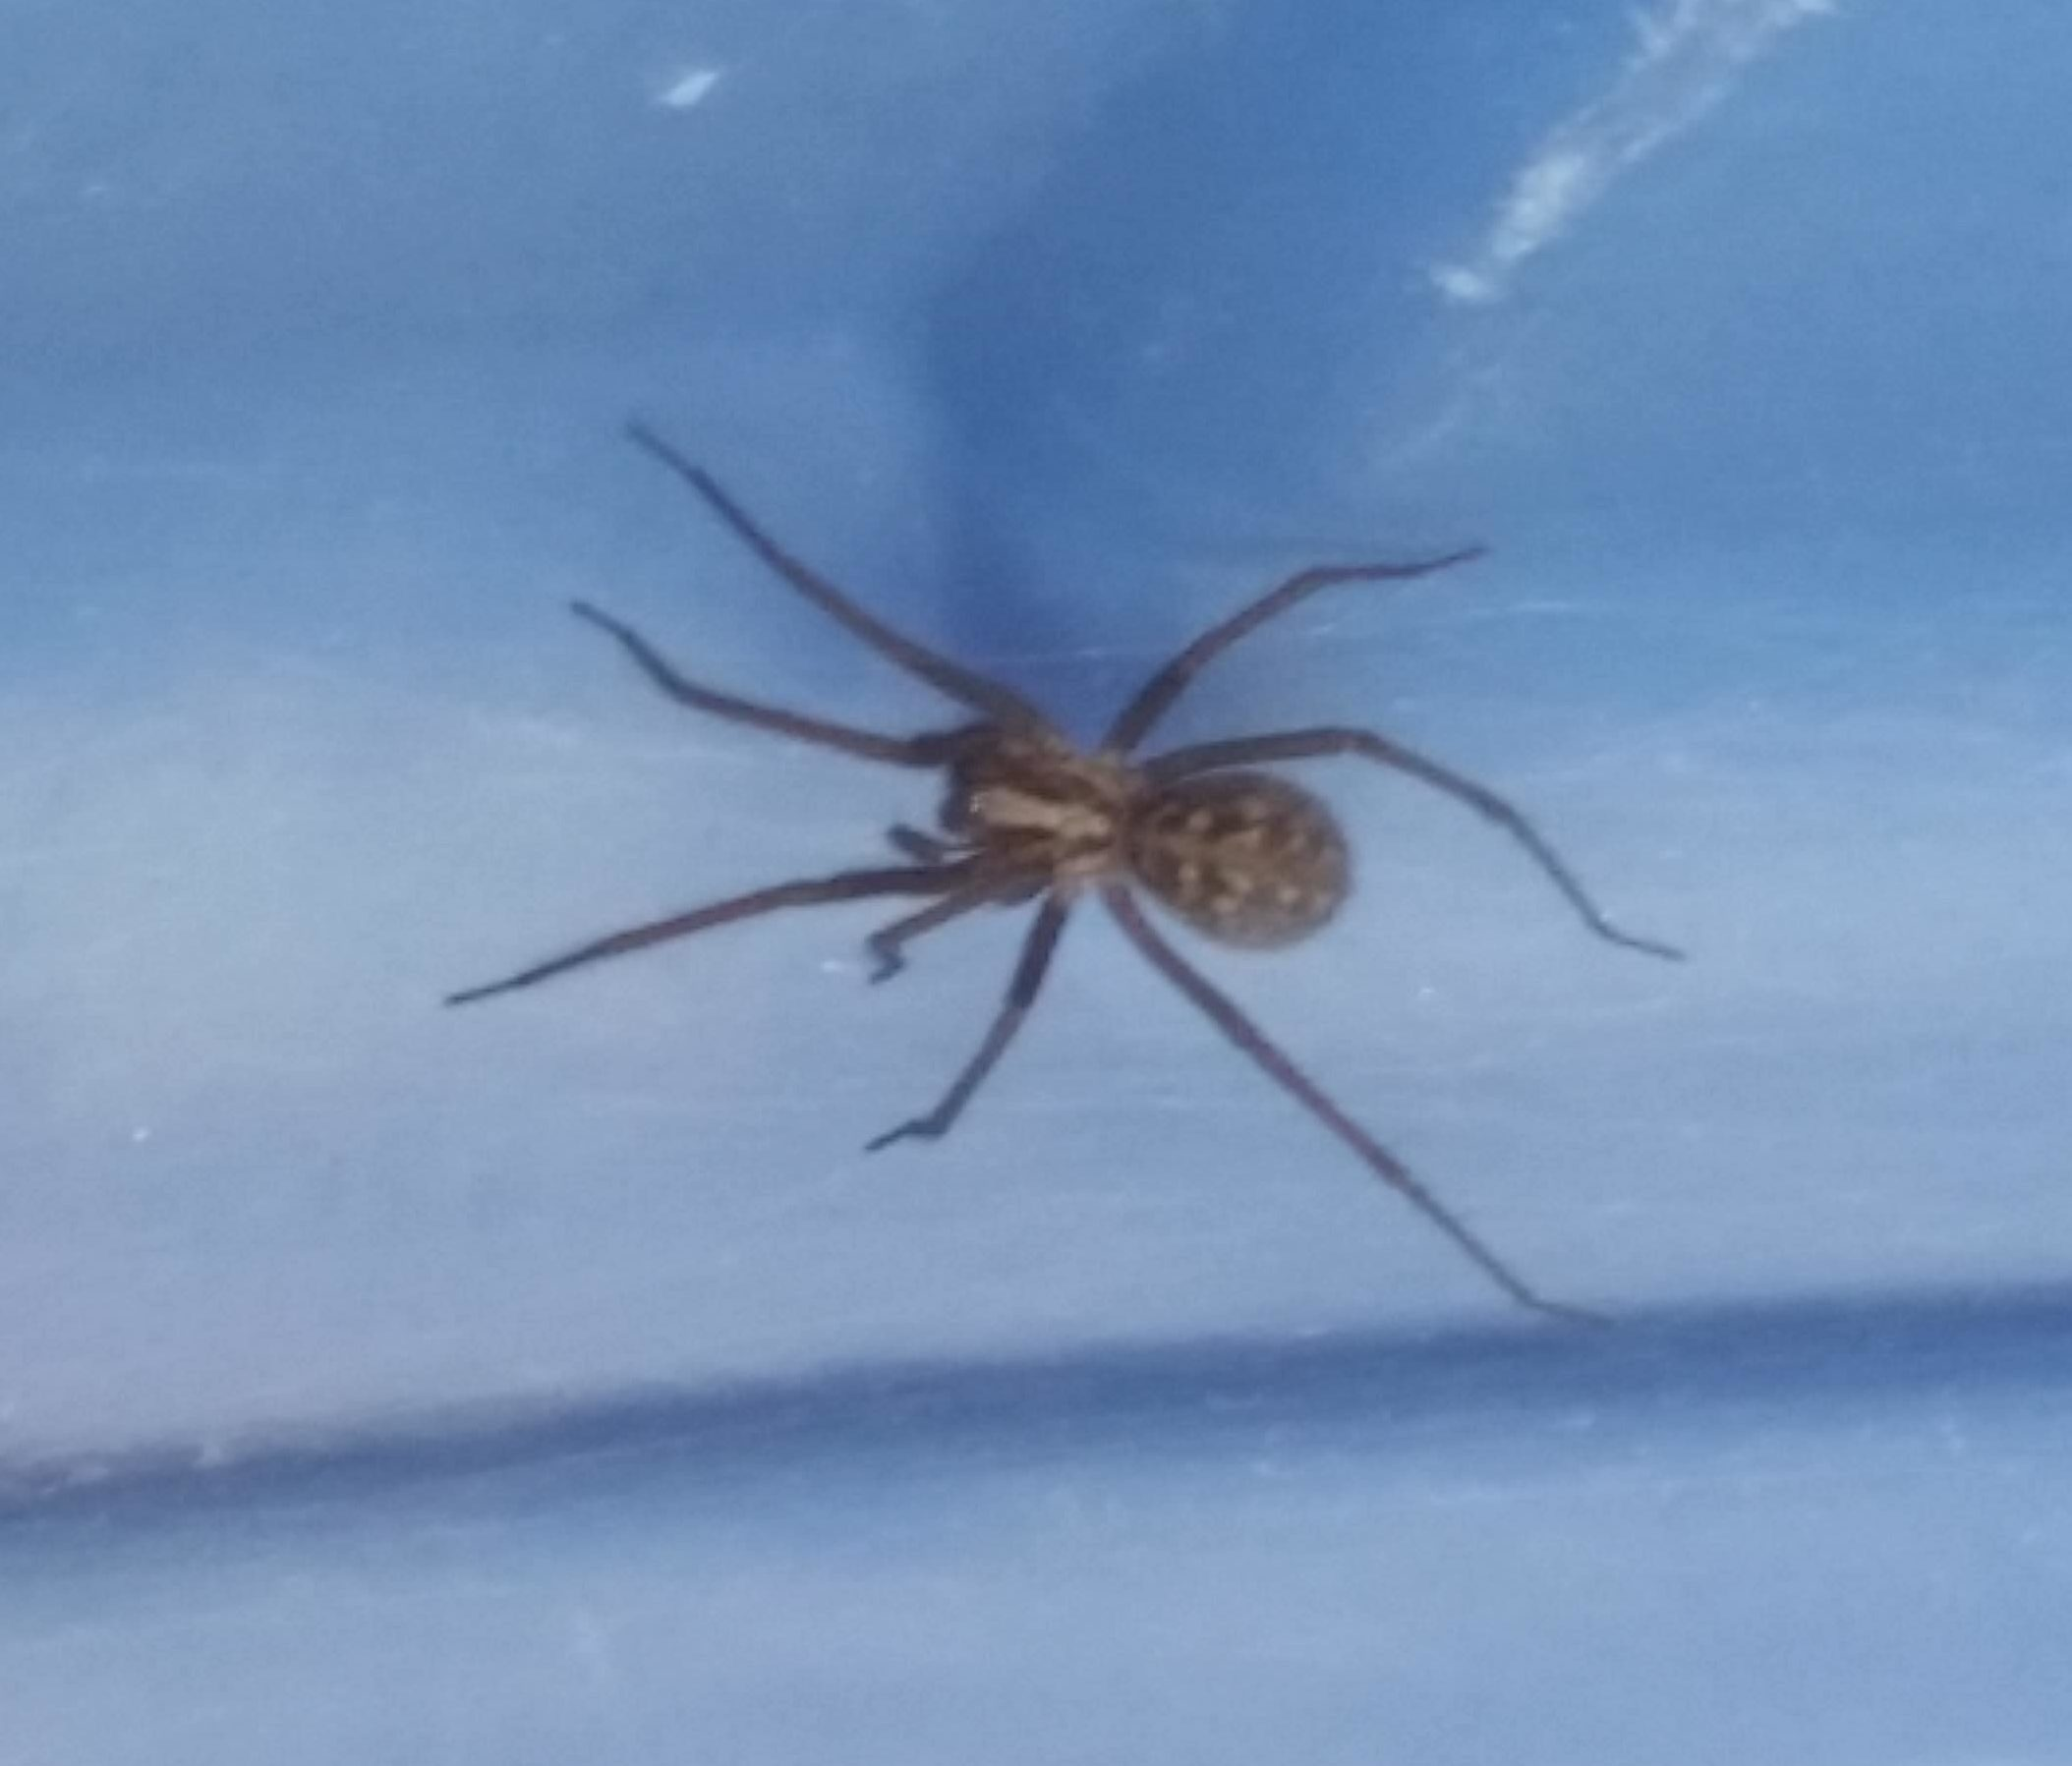 Picture of Eratigena duellica (Giant House Spider) - Dorsal